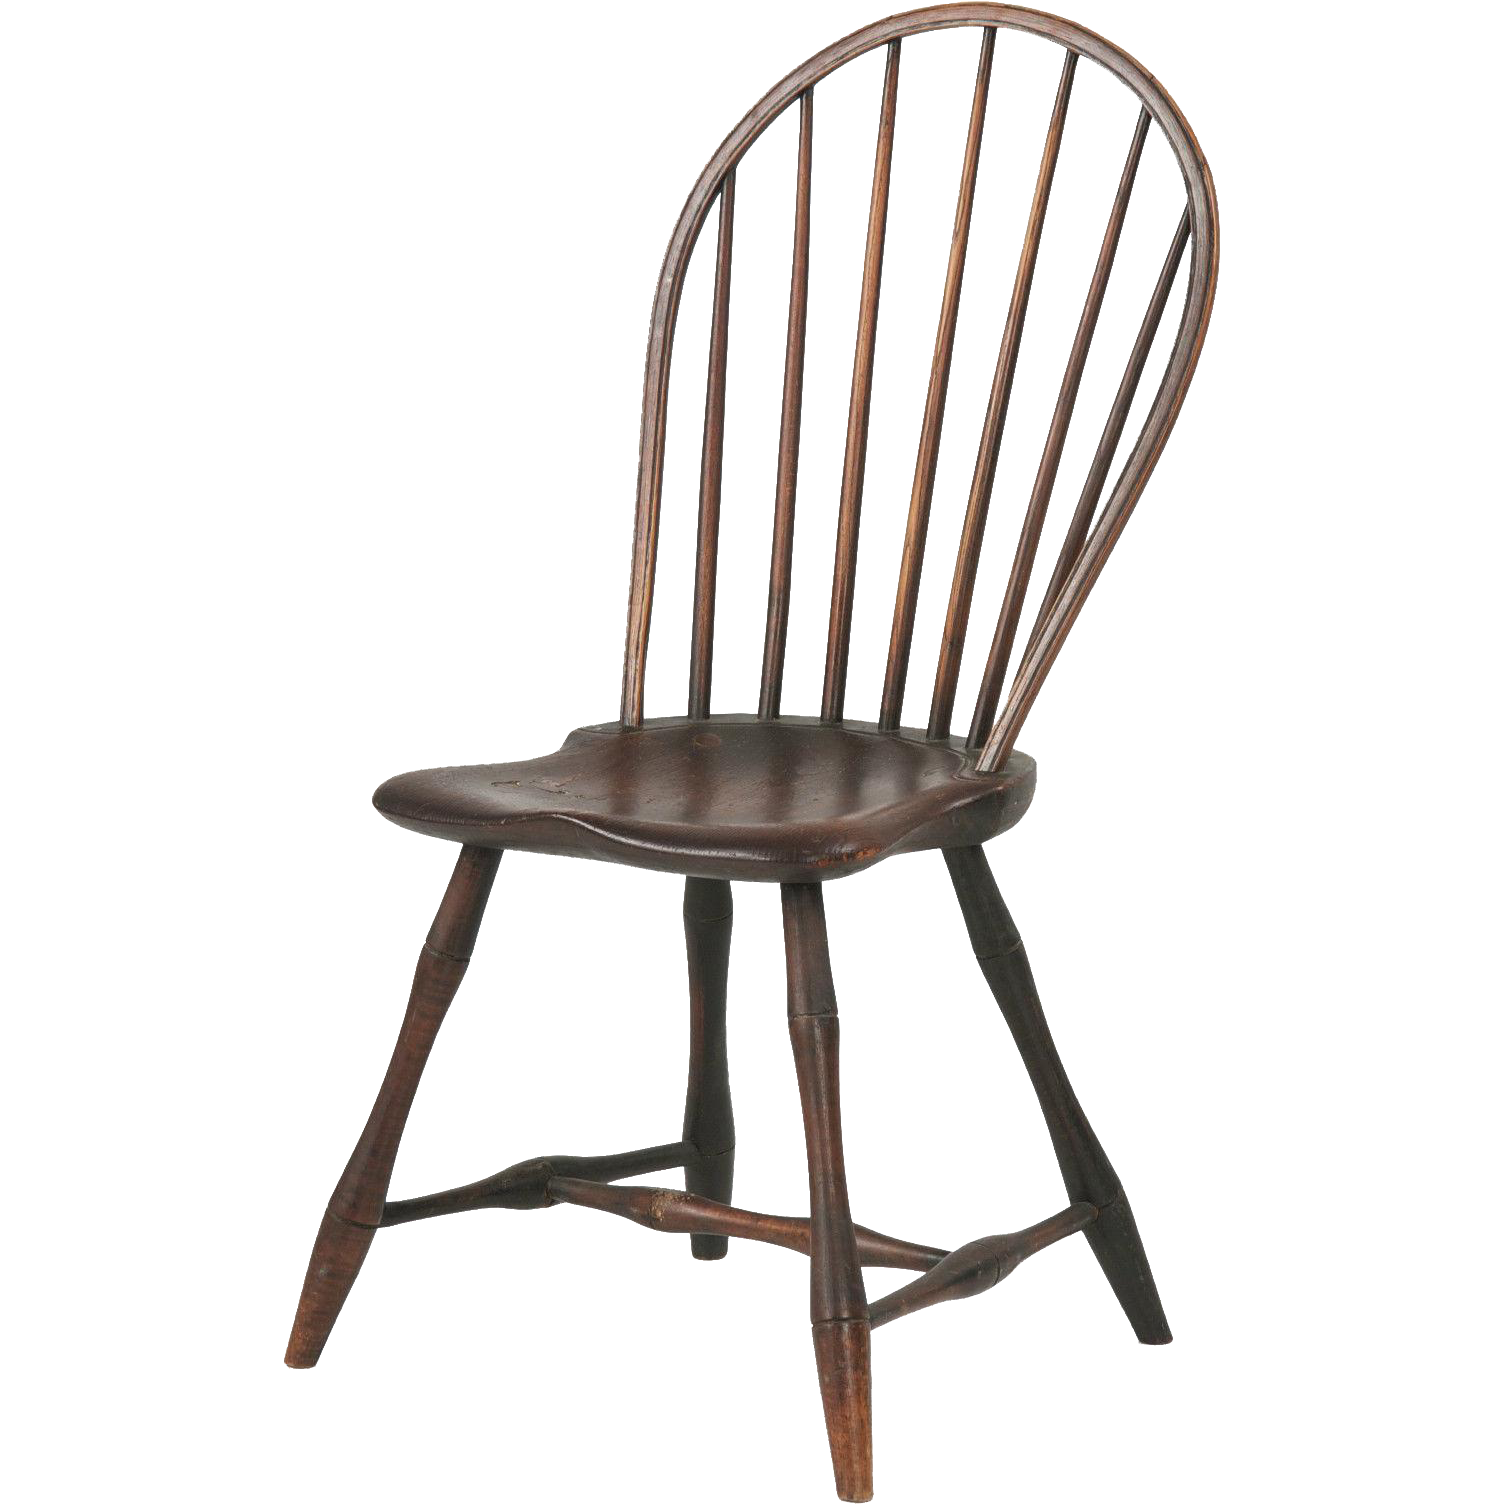 American bowback antique windsor side chair pennsylvania c 1800 from